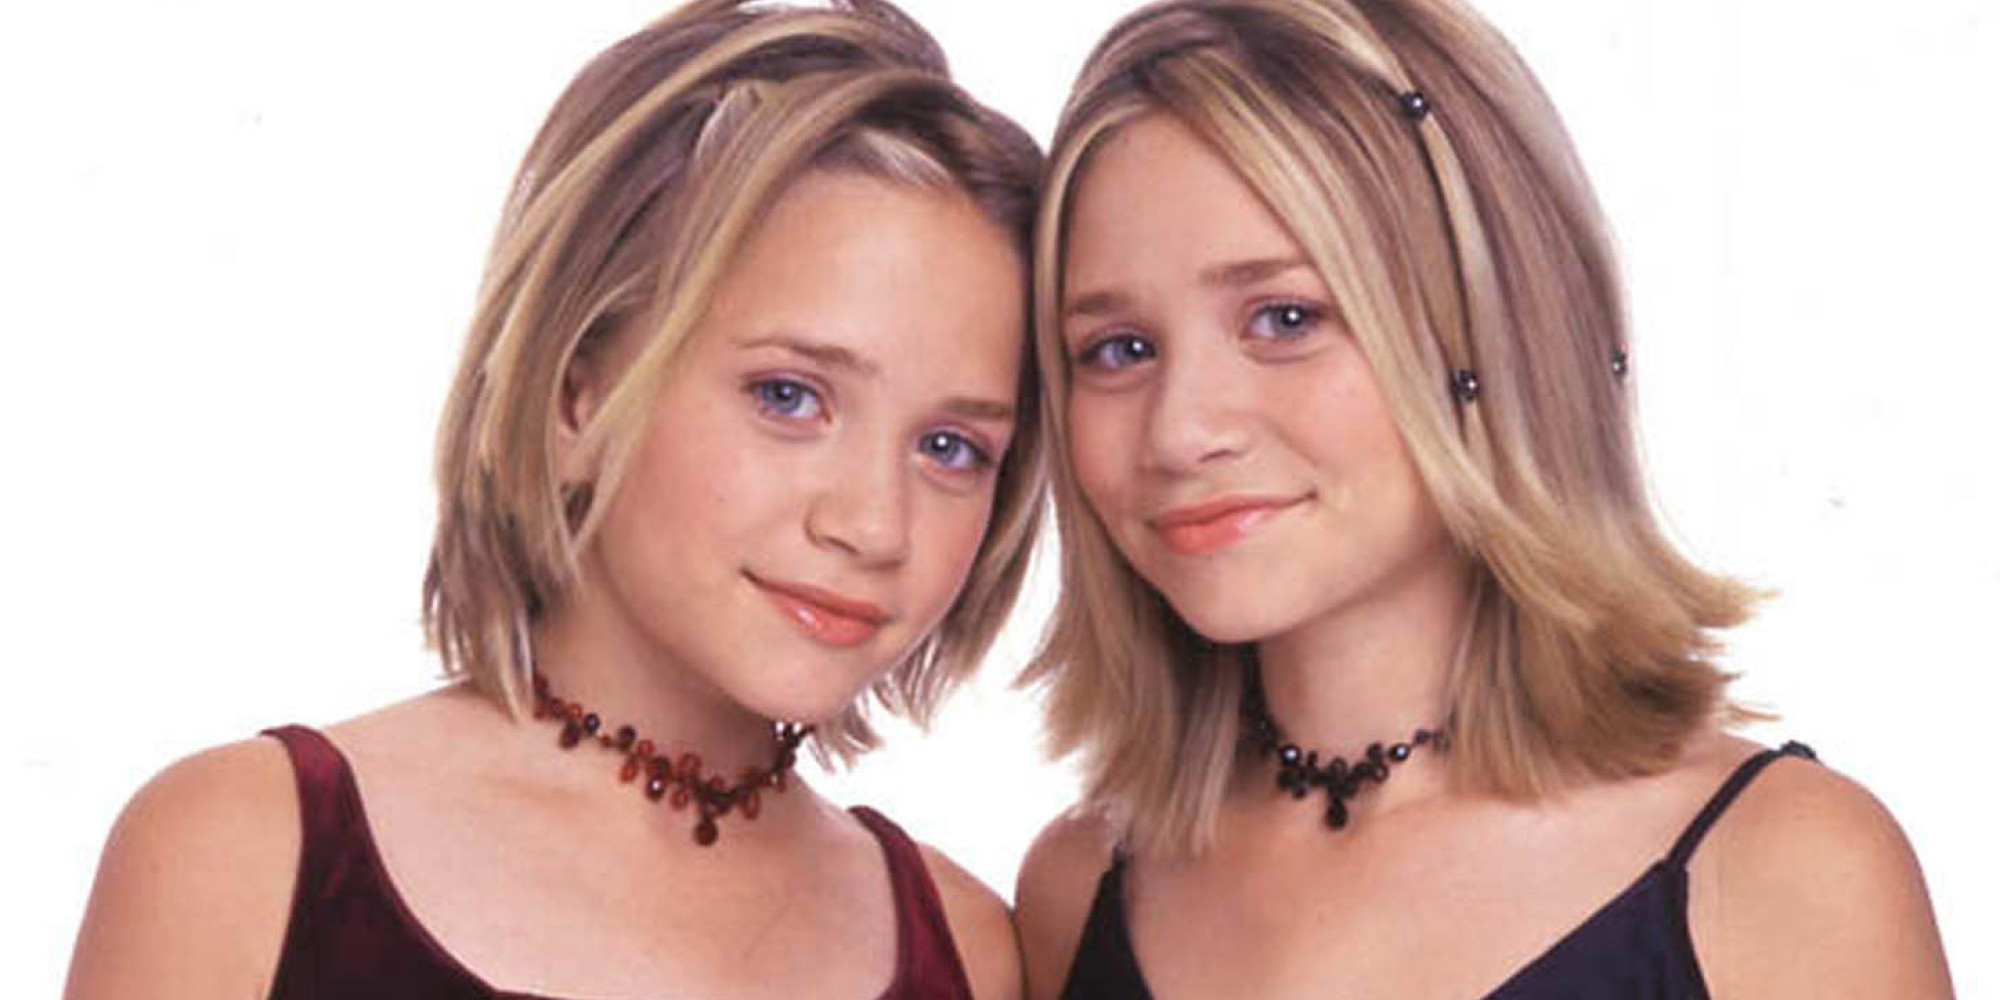 Mary Kate And Ashley Movies Celebrate The Olsen Twins: If Your Childhood Idols Were Mary-Kate And Ashley Olsen